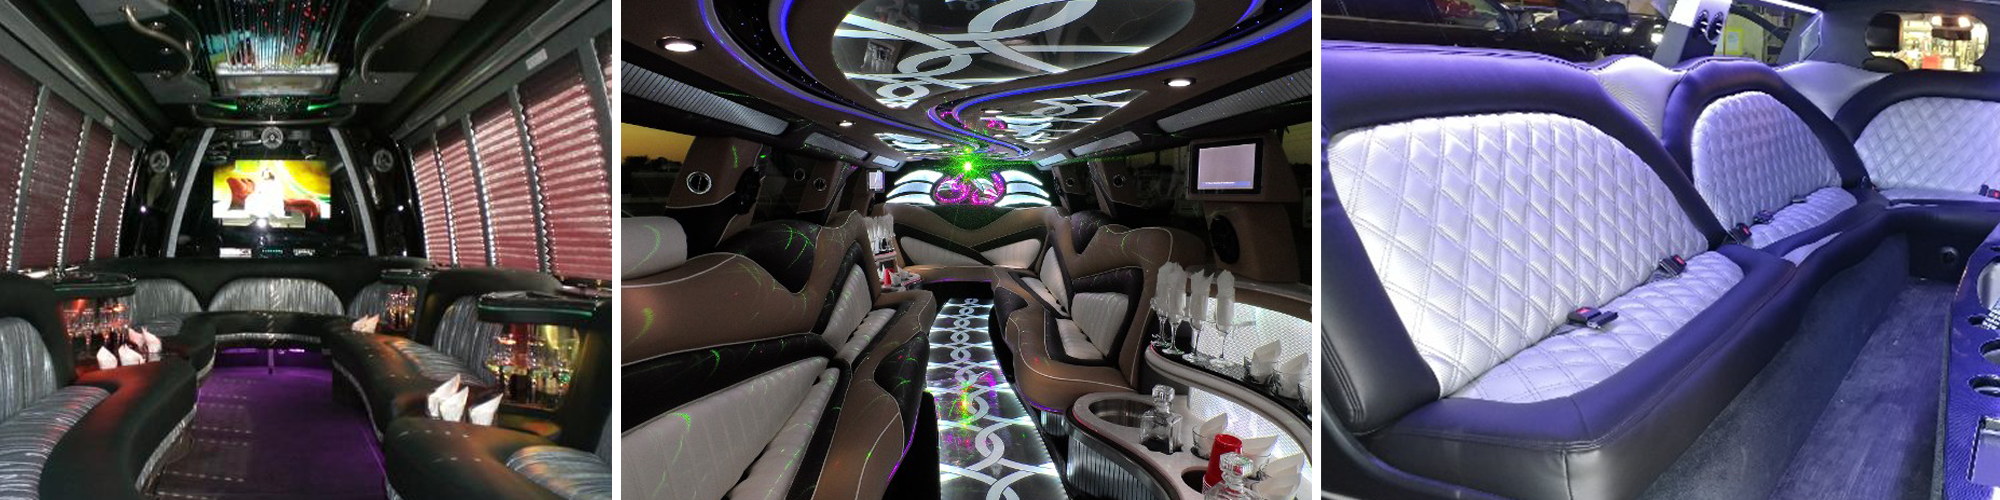 Inside of Limousines